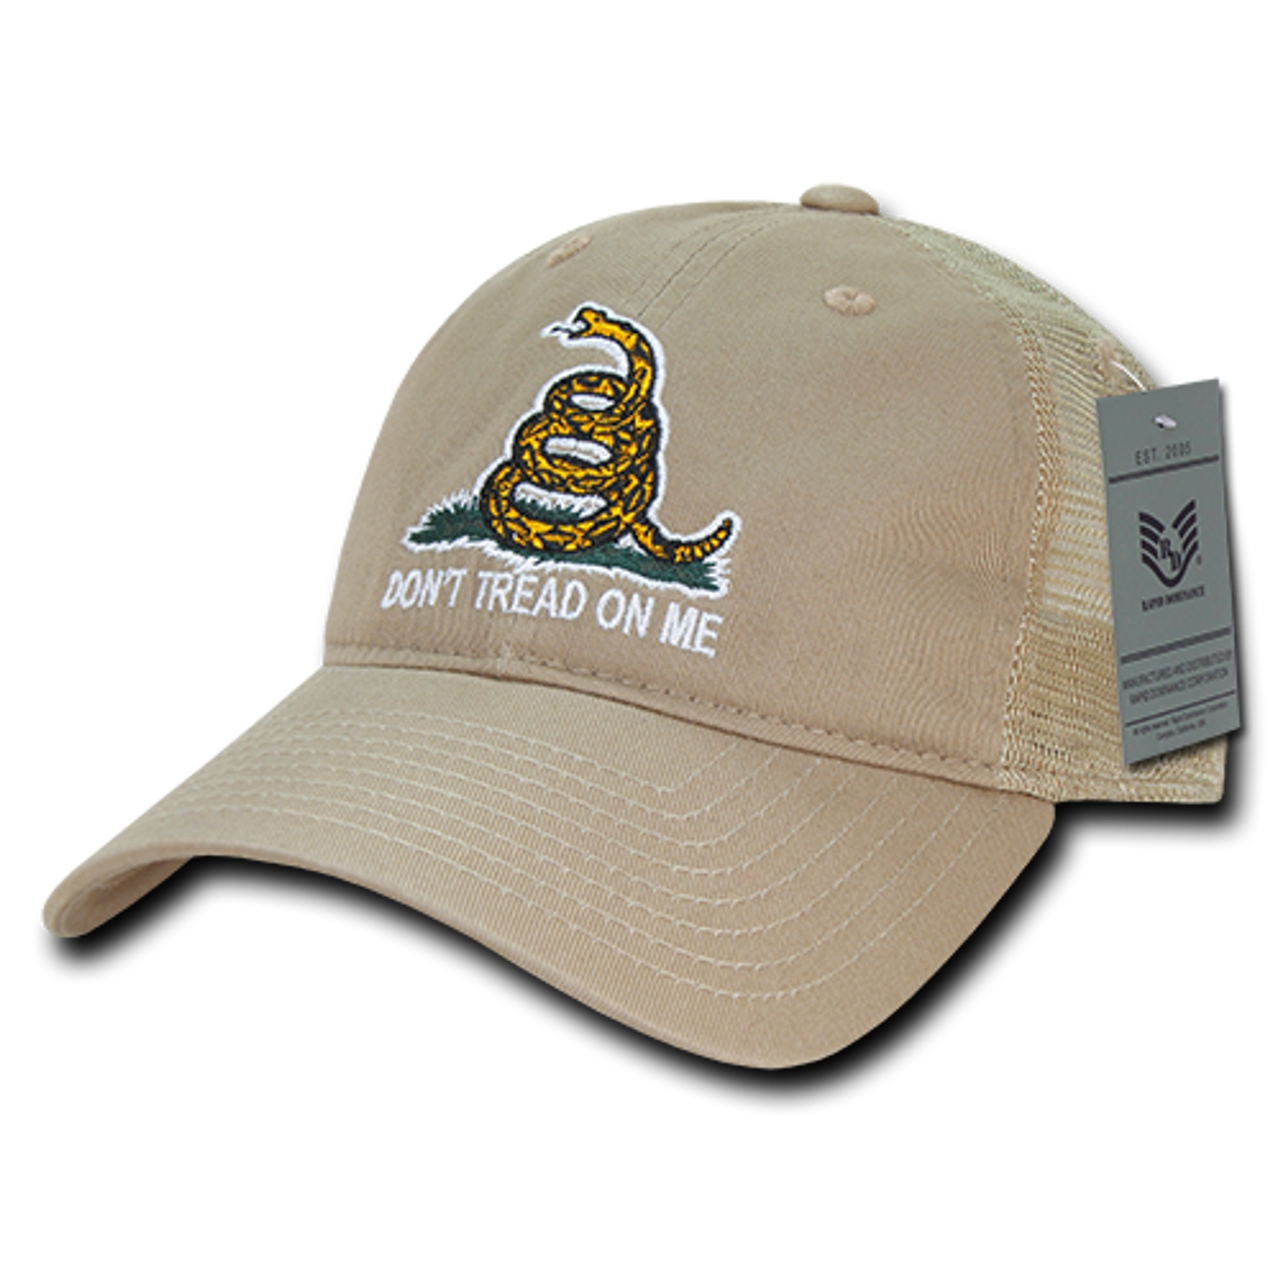 5e2c3f427 A05 - Gadsden Flag Cap - Relaxed Cotton & Trucker Mesh - Khaki